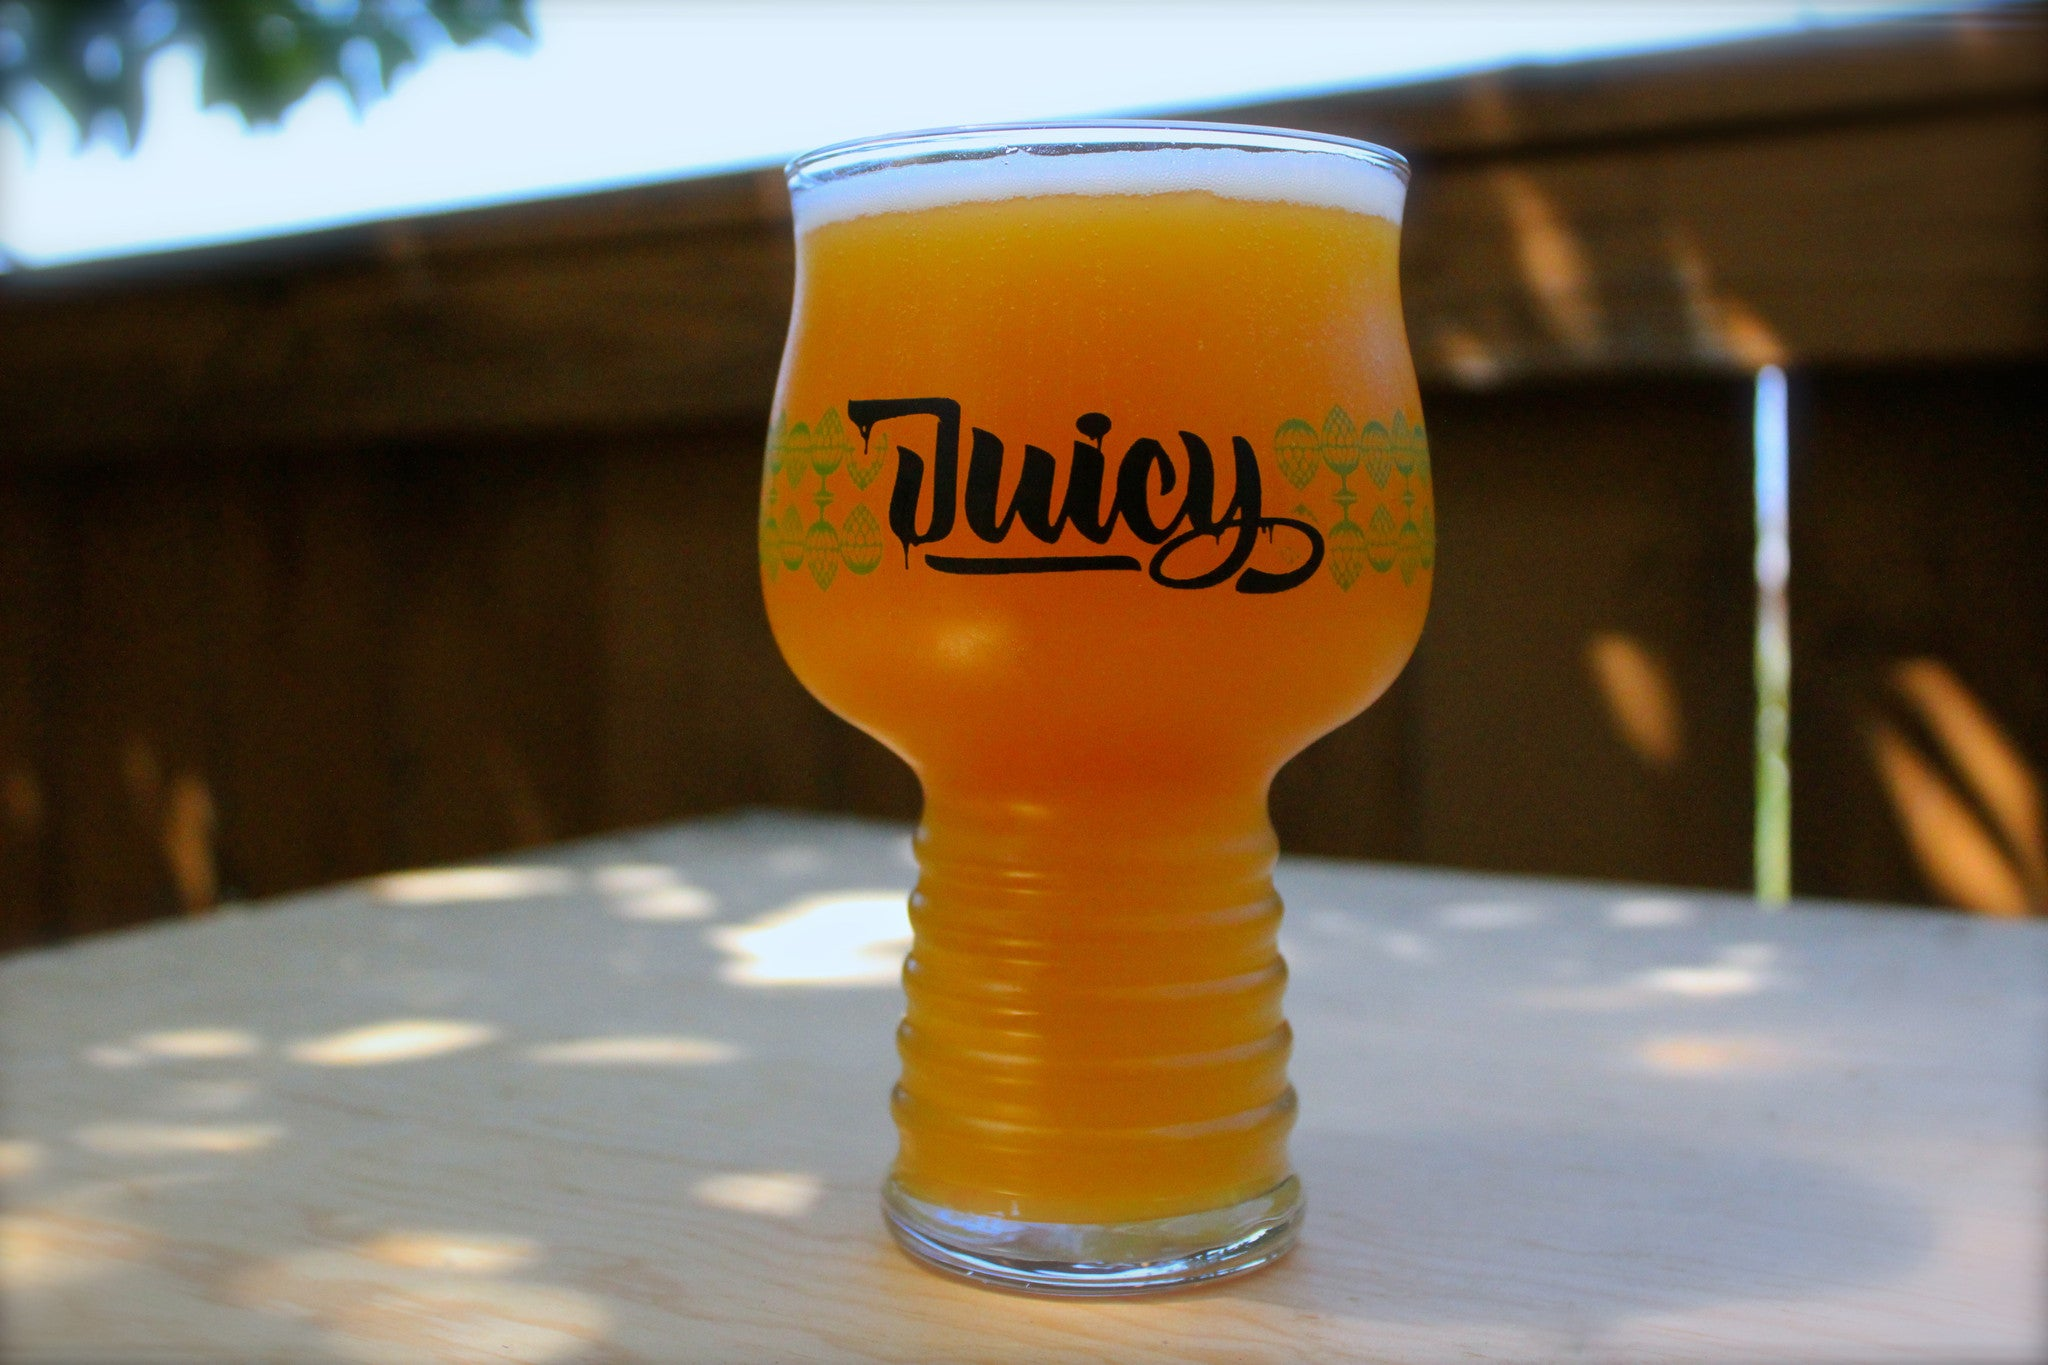 The Juicy Glass | B1